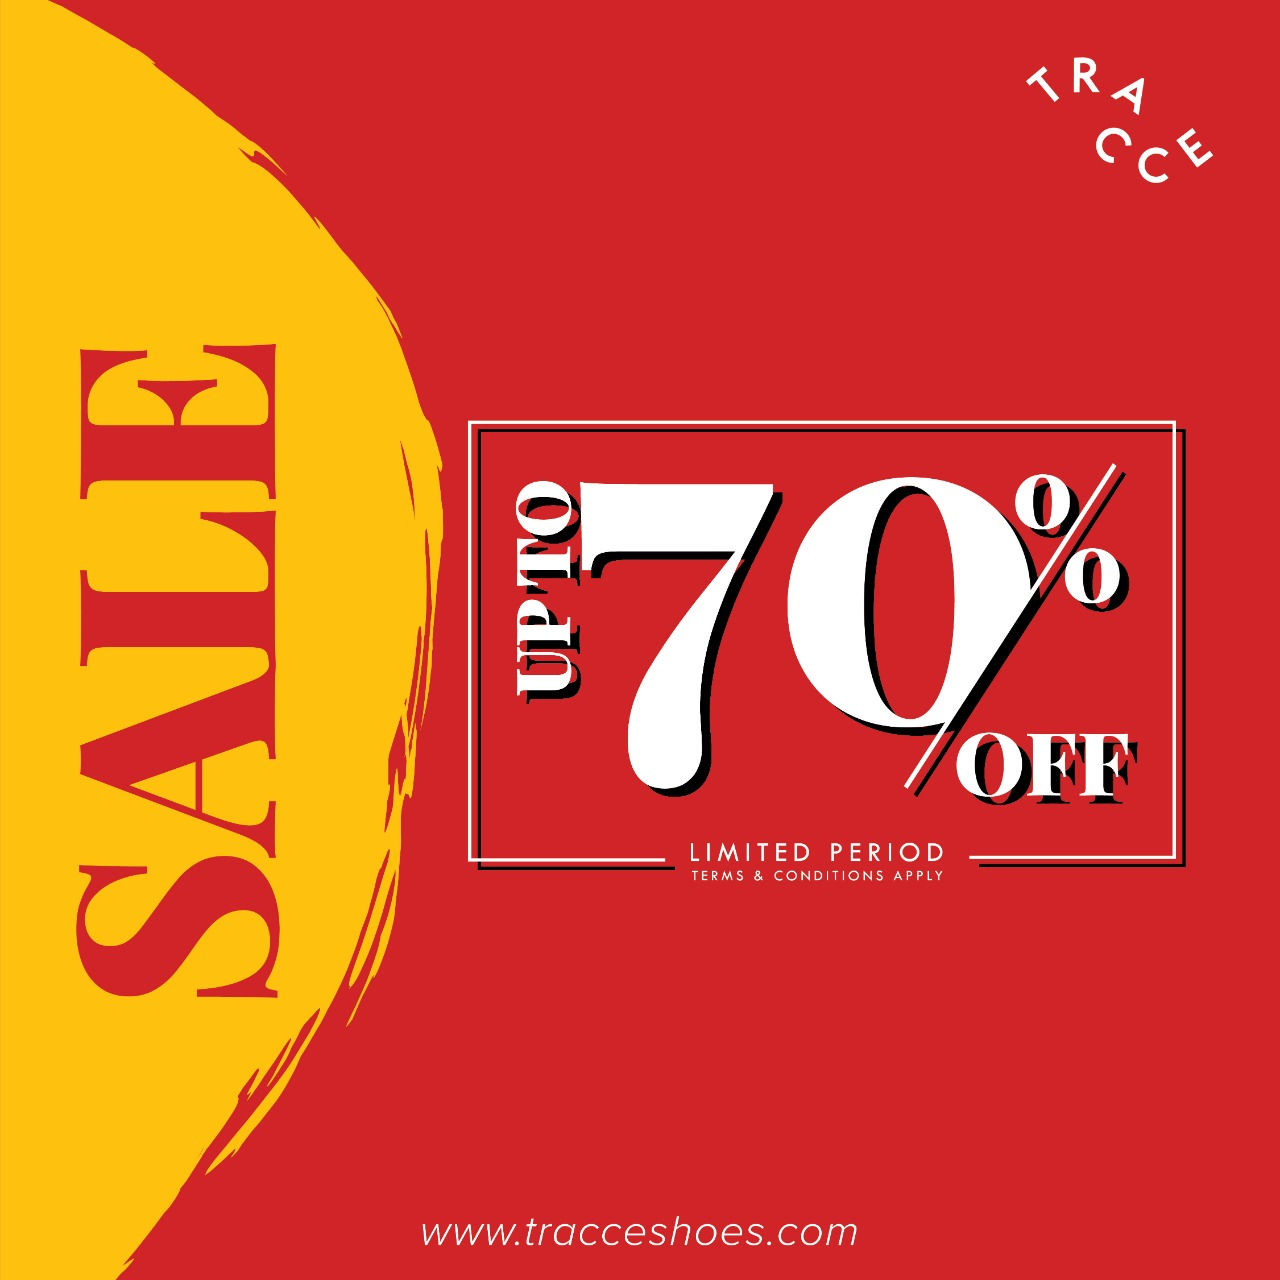 Promo TRACCE SALE: Get Disc up to 70% off